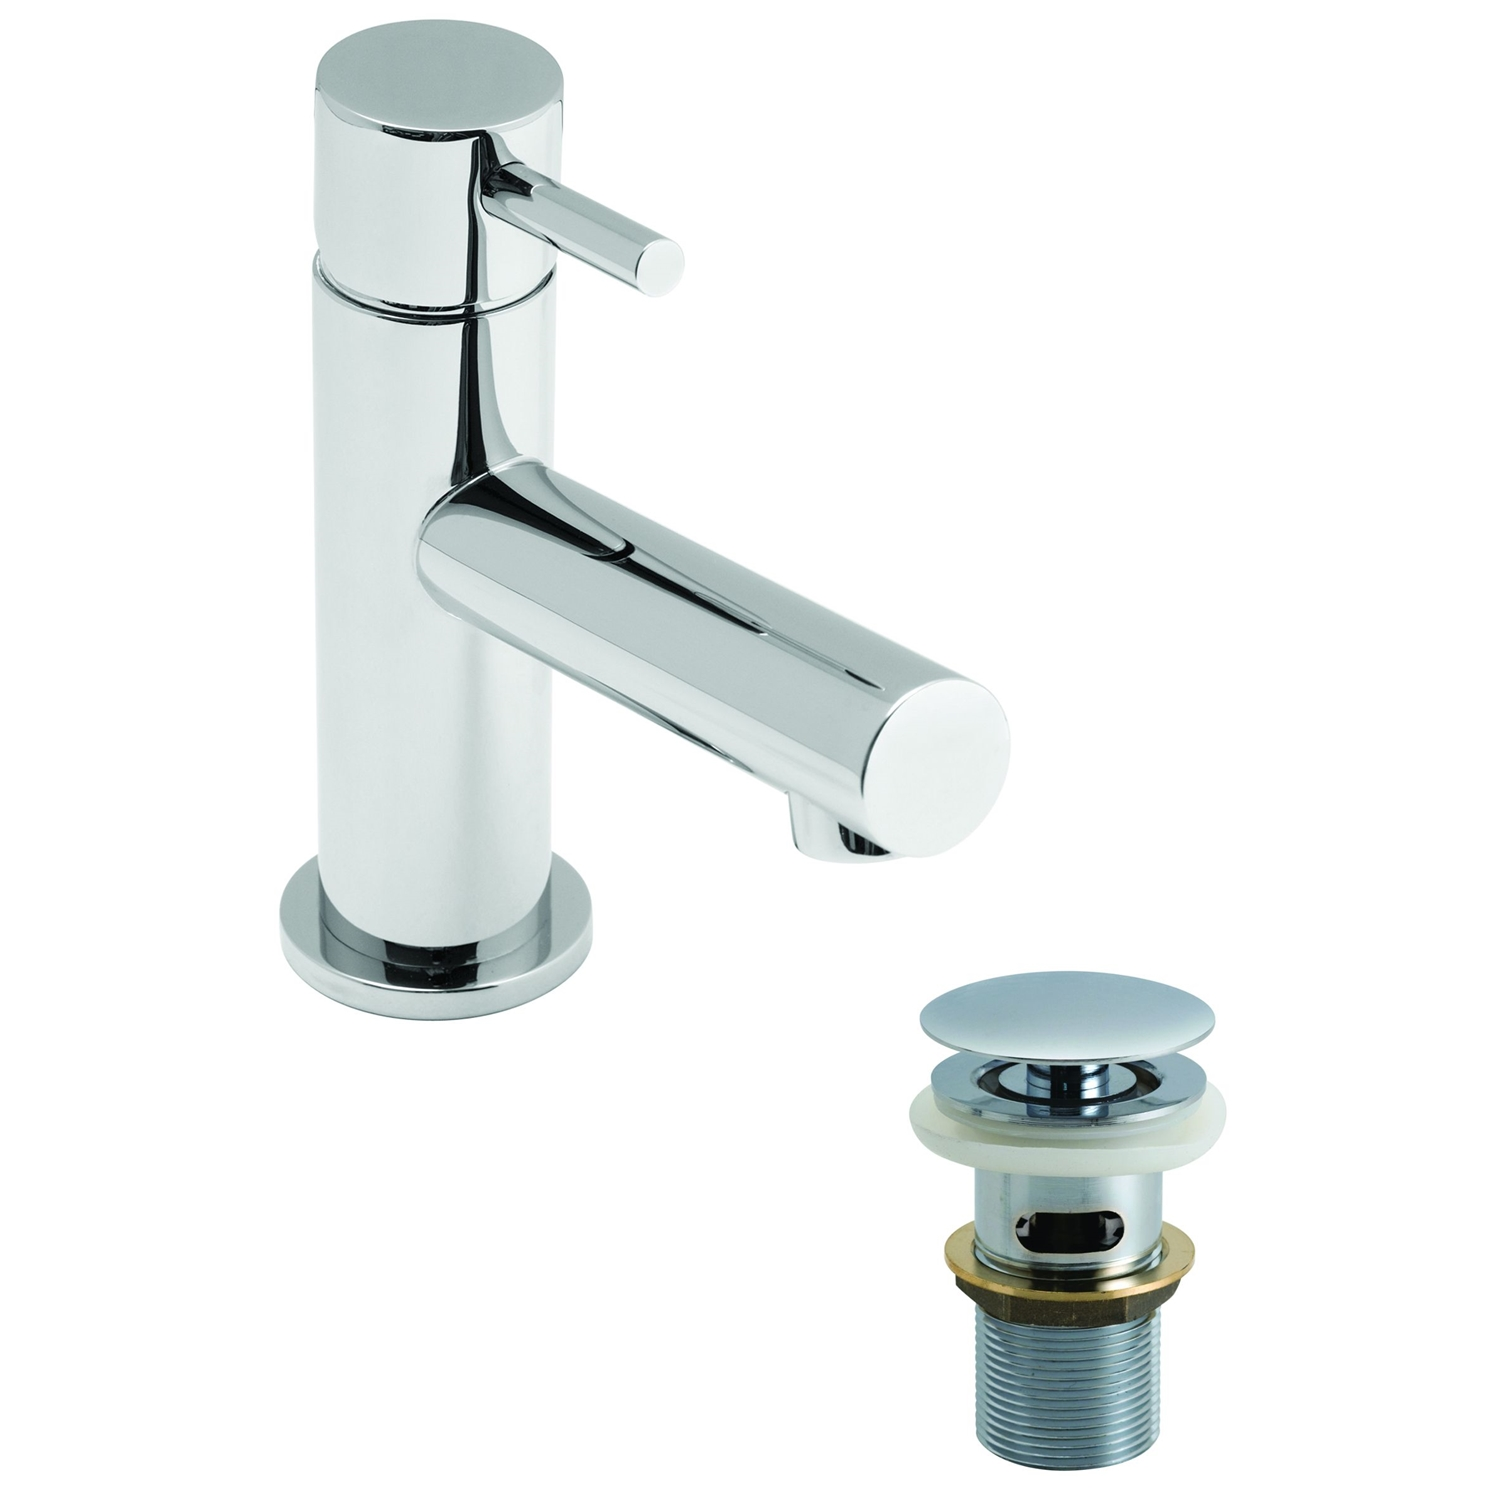 Image of Casa Calgary Mini Mono Basin Mixer Single Lever without Clic Waste, Chrome